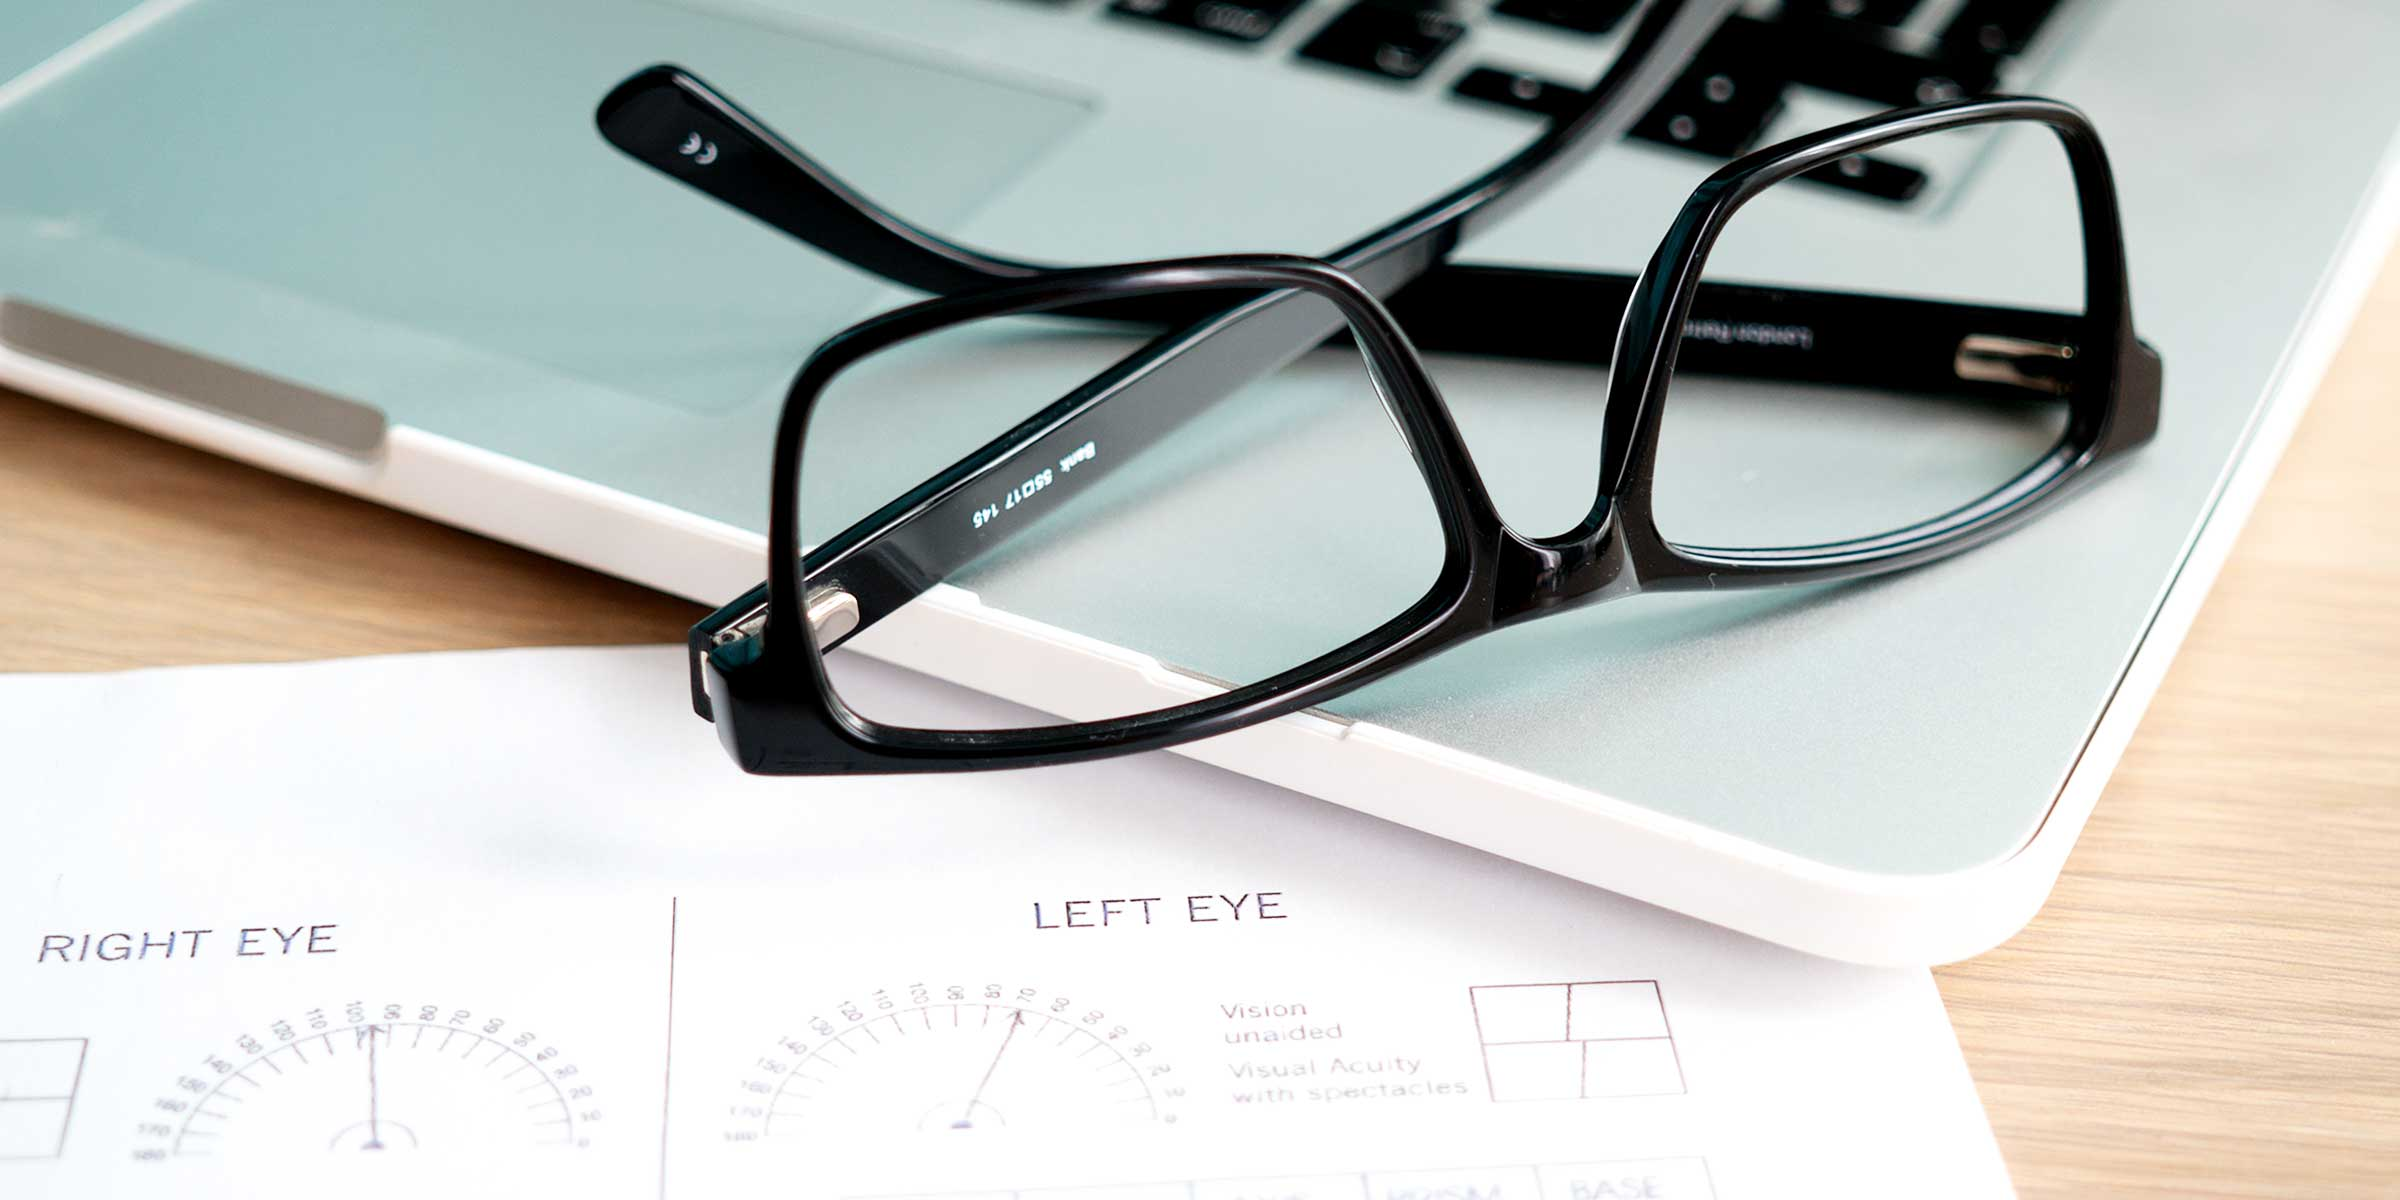 A black glasses frame lying on a laptop